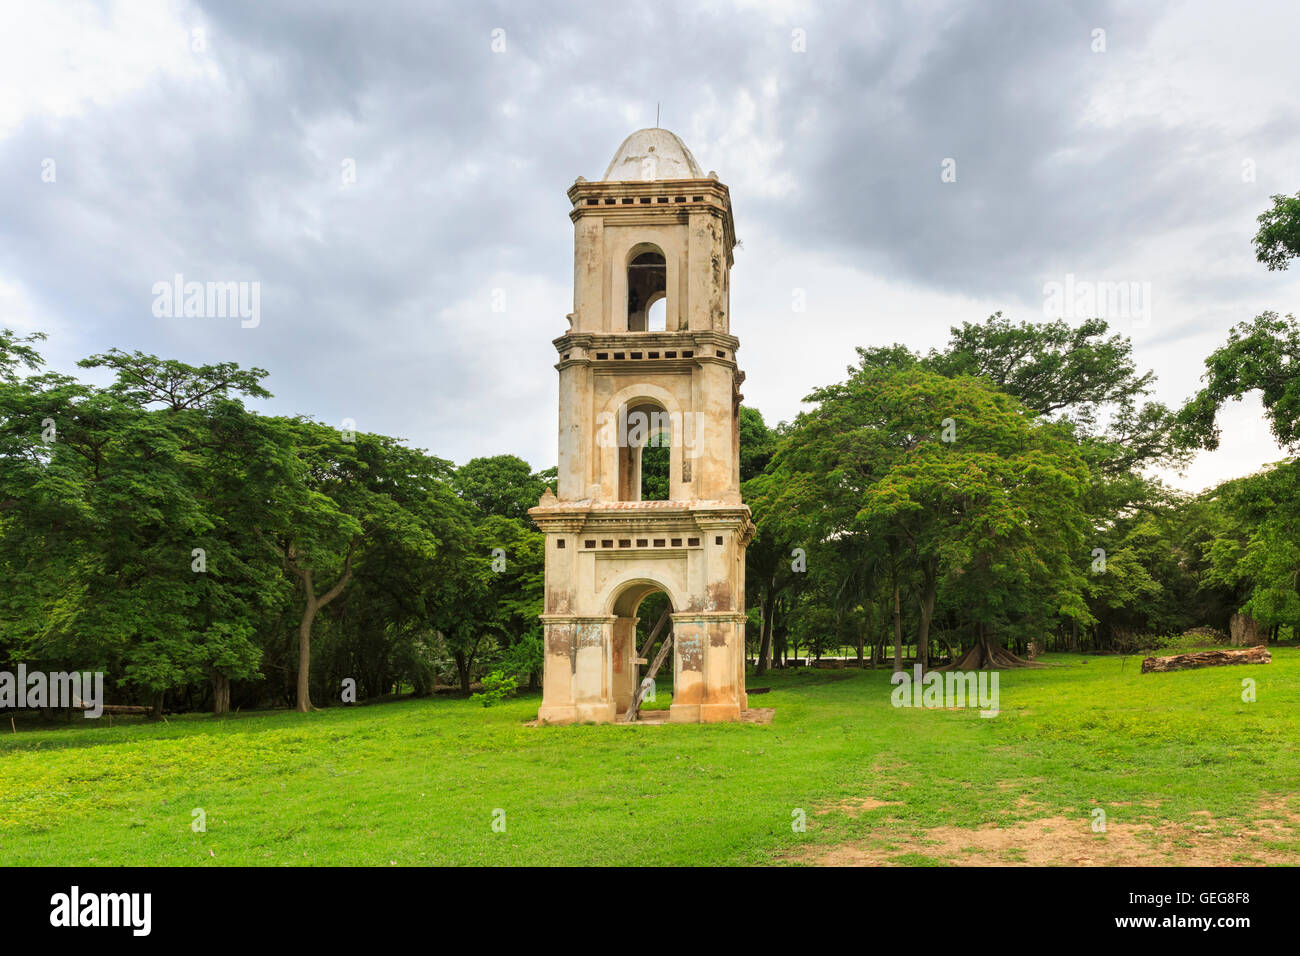 Bell tower of San Isidro de los Destiladeros, old Sugar Mill estate in the Valley of the Sugar Mills, Cuba - Stock Image